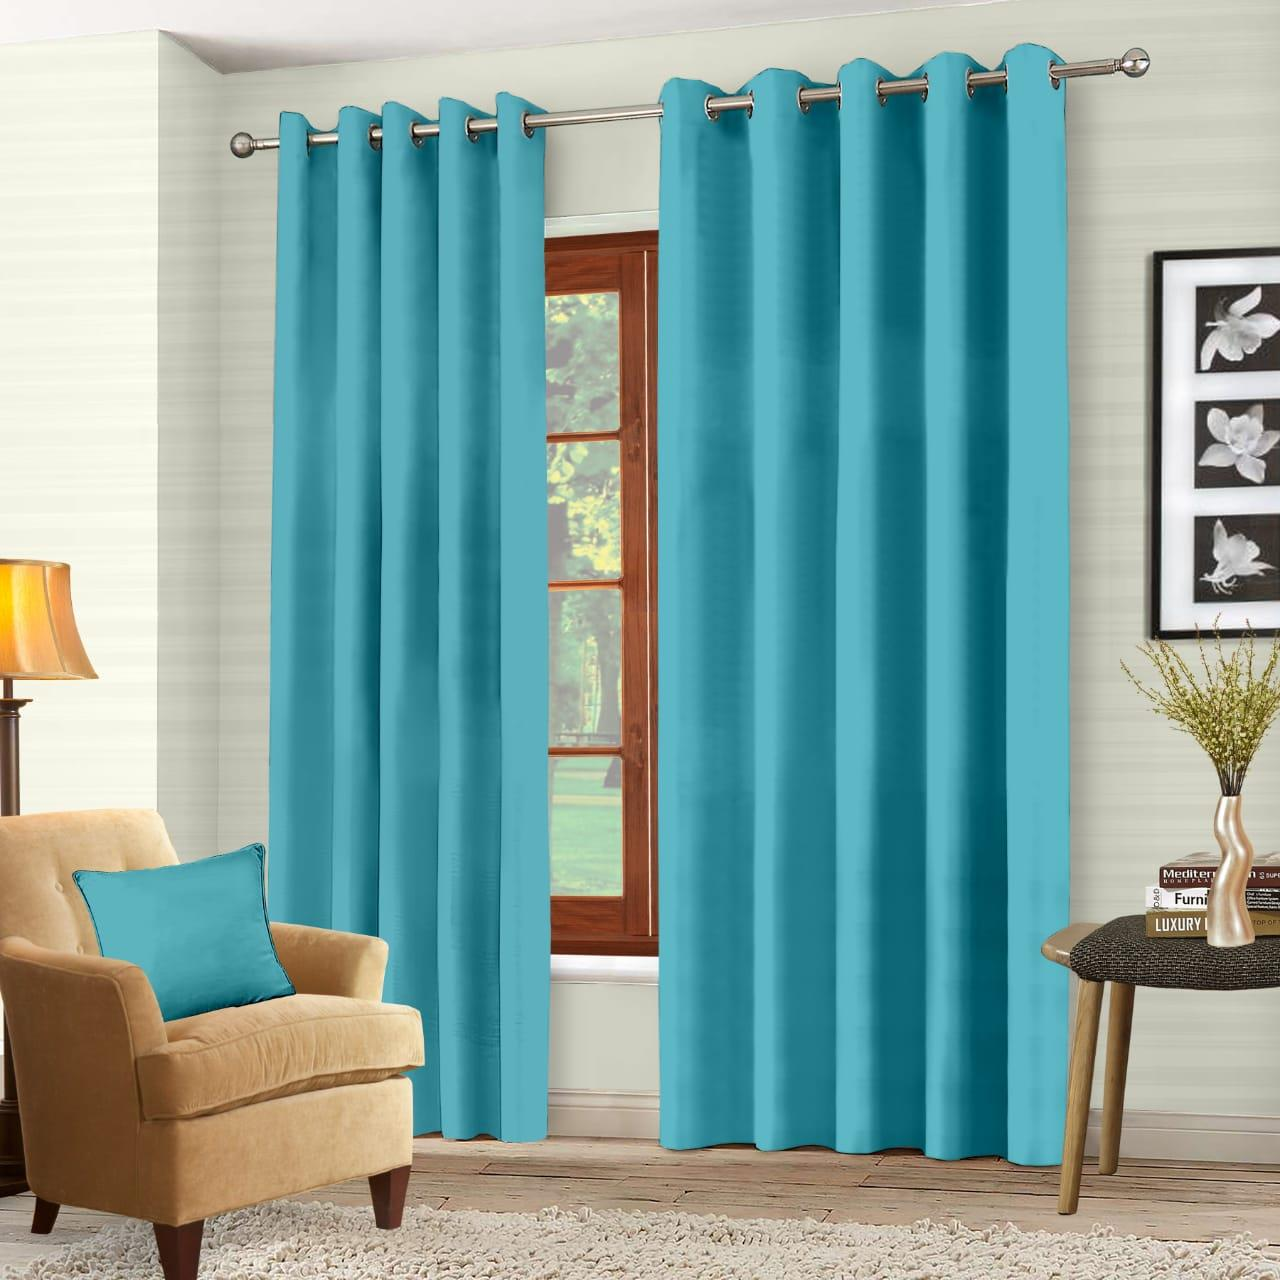 Luxury-Thermal-Blackout-Eyelet-Ring-Top-Curtains-Pair-with-tie-backs thumbnail 53